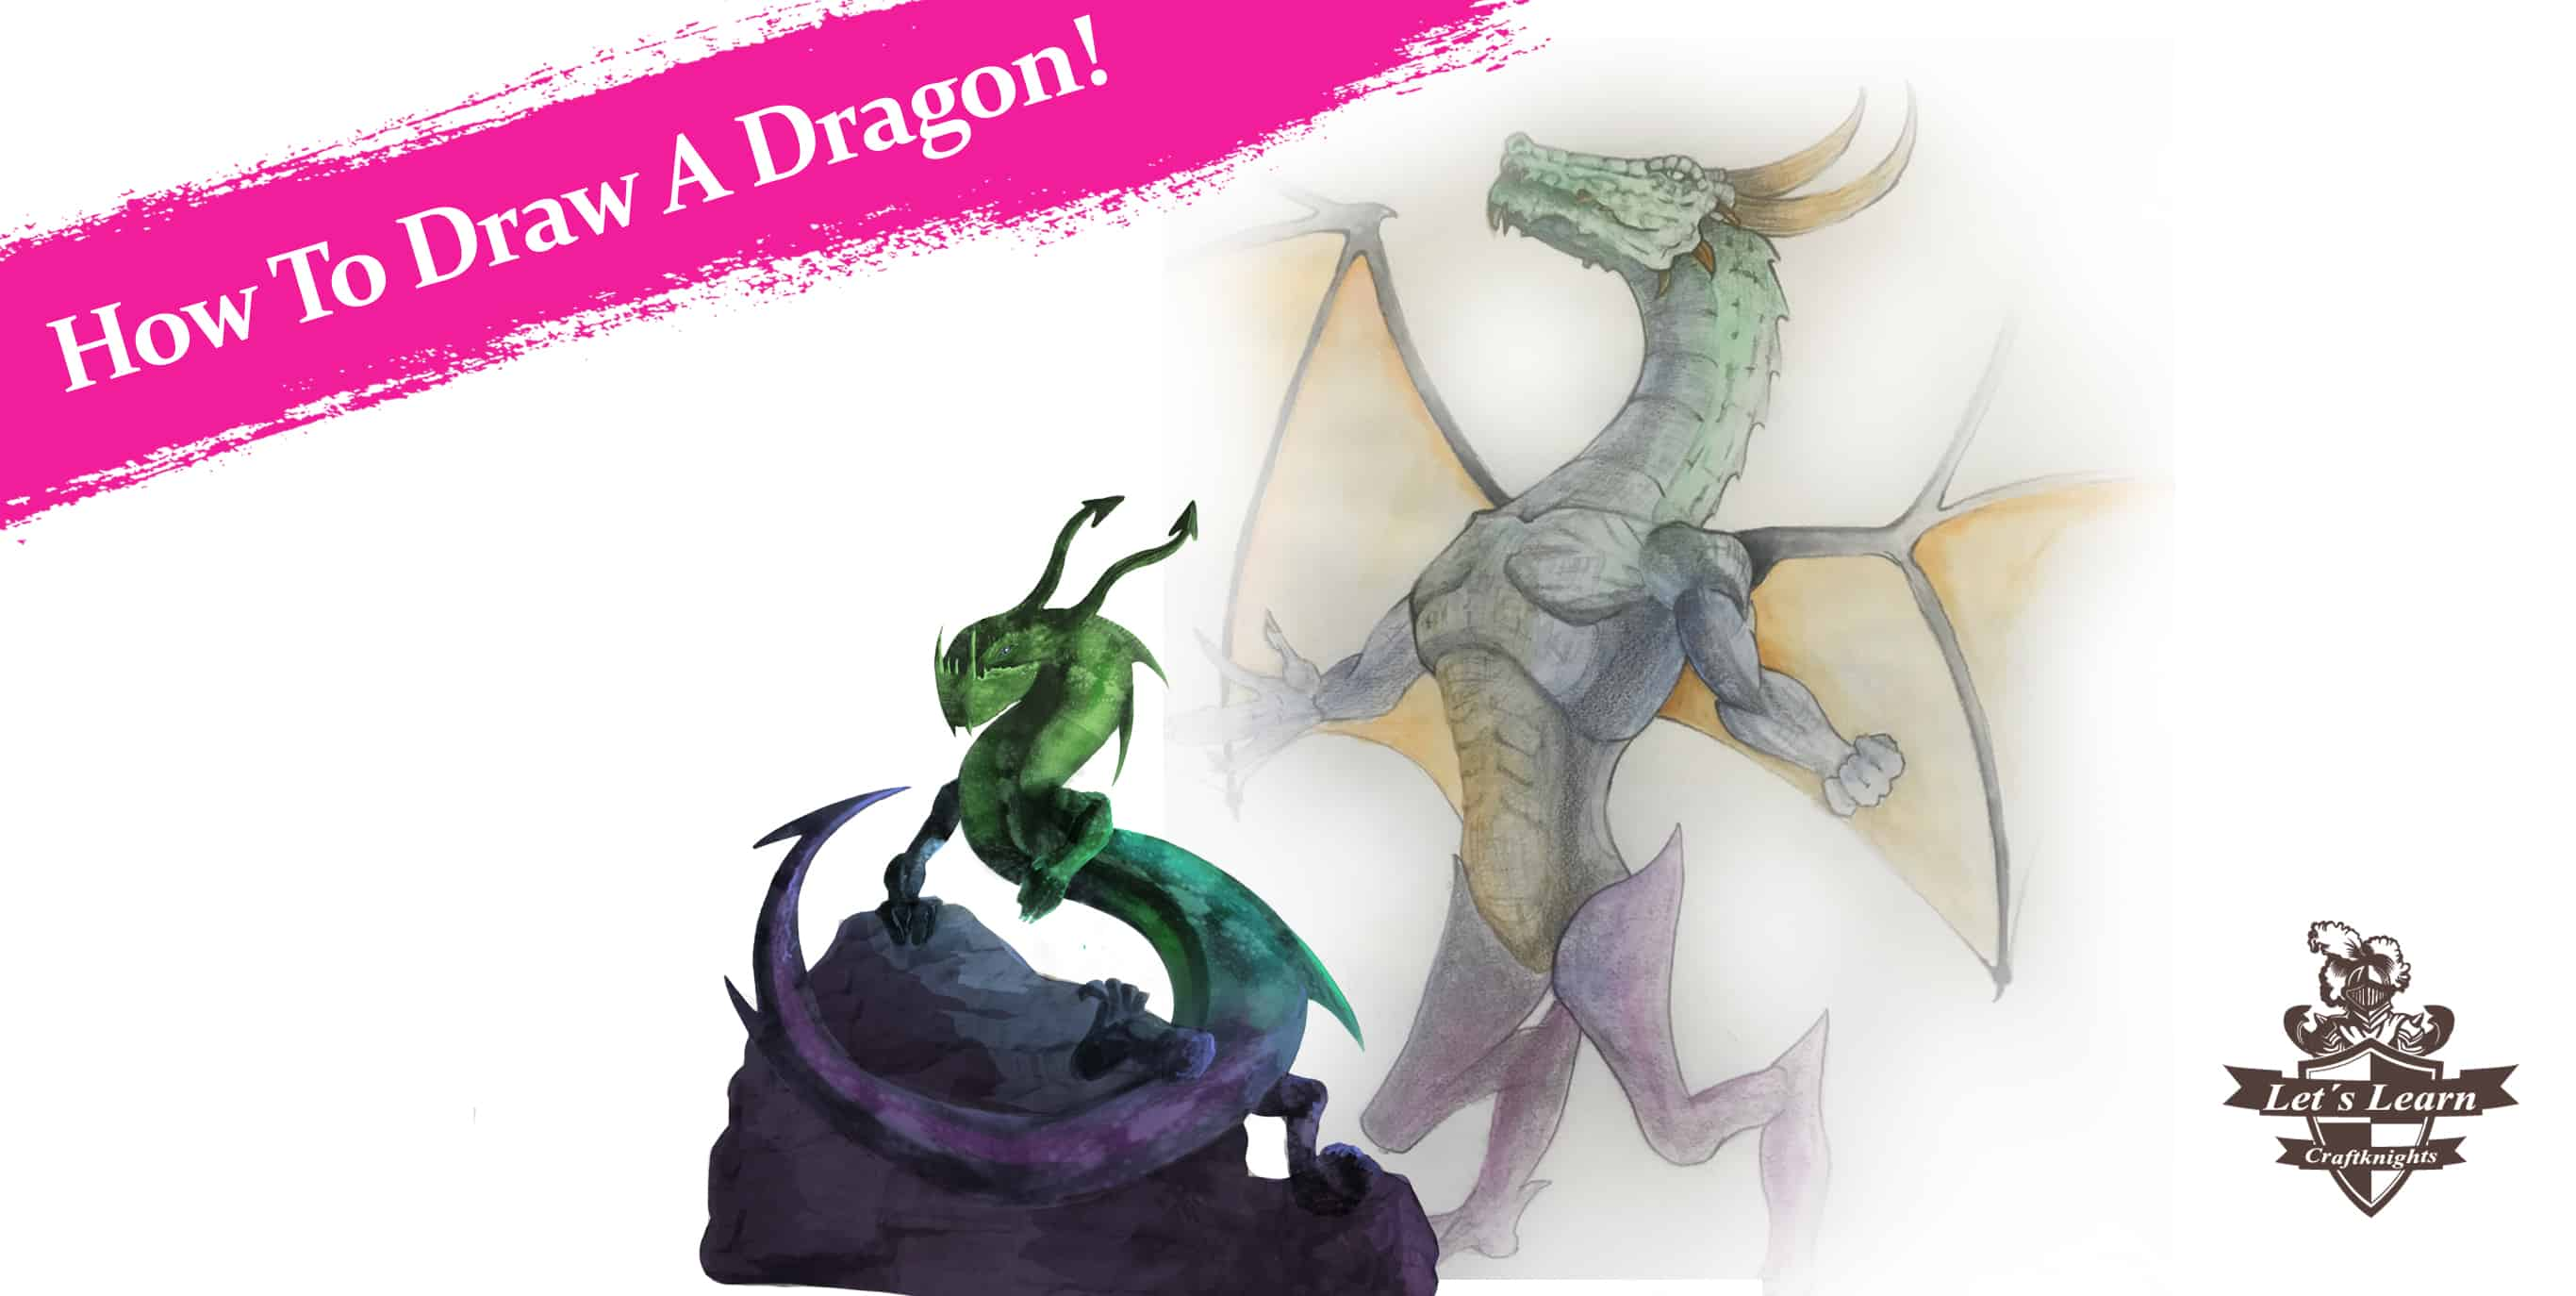 How To Draw A Dragon. Guide For Every Skill Level